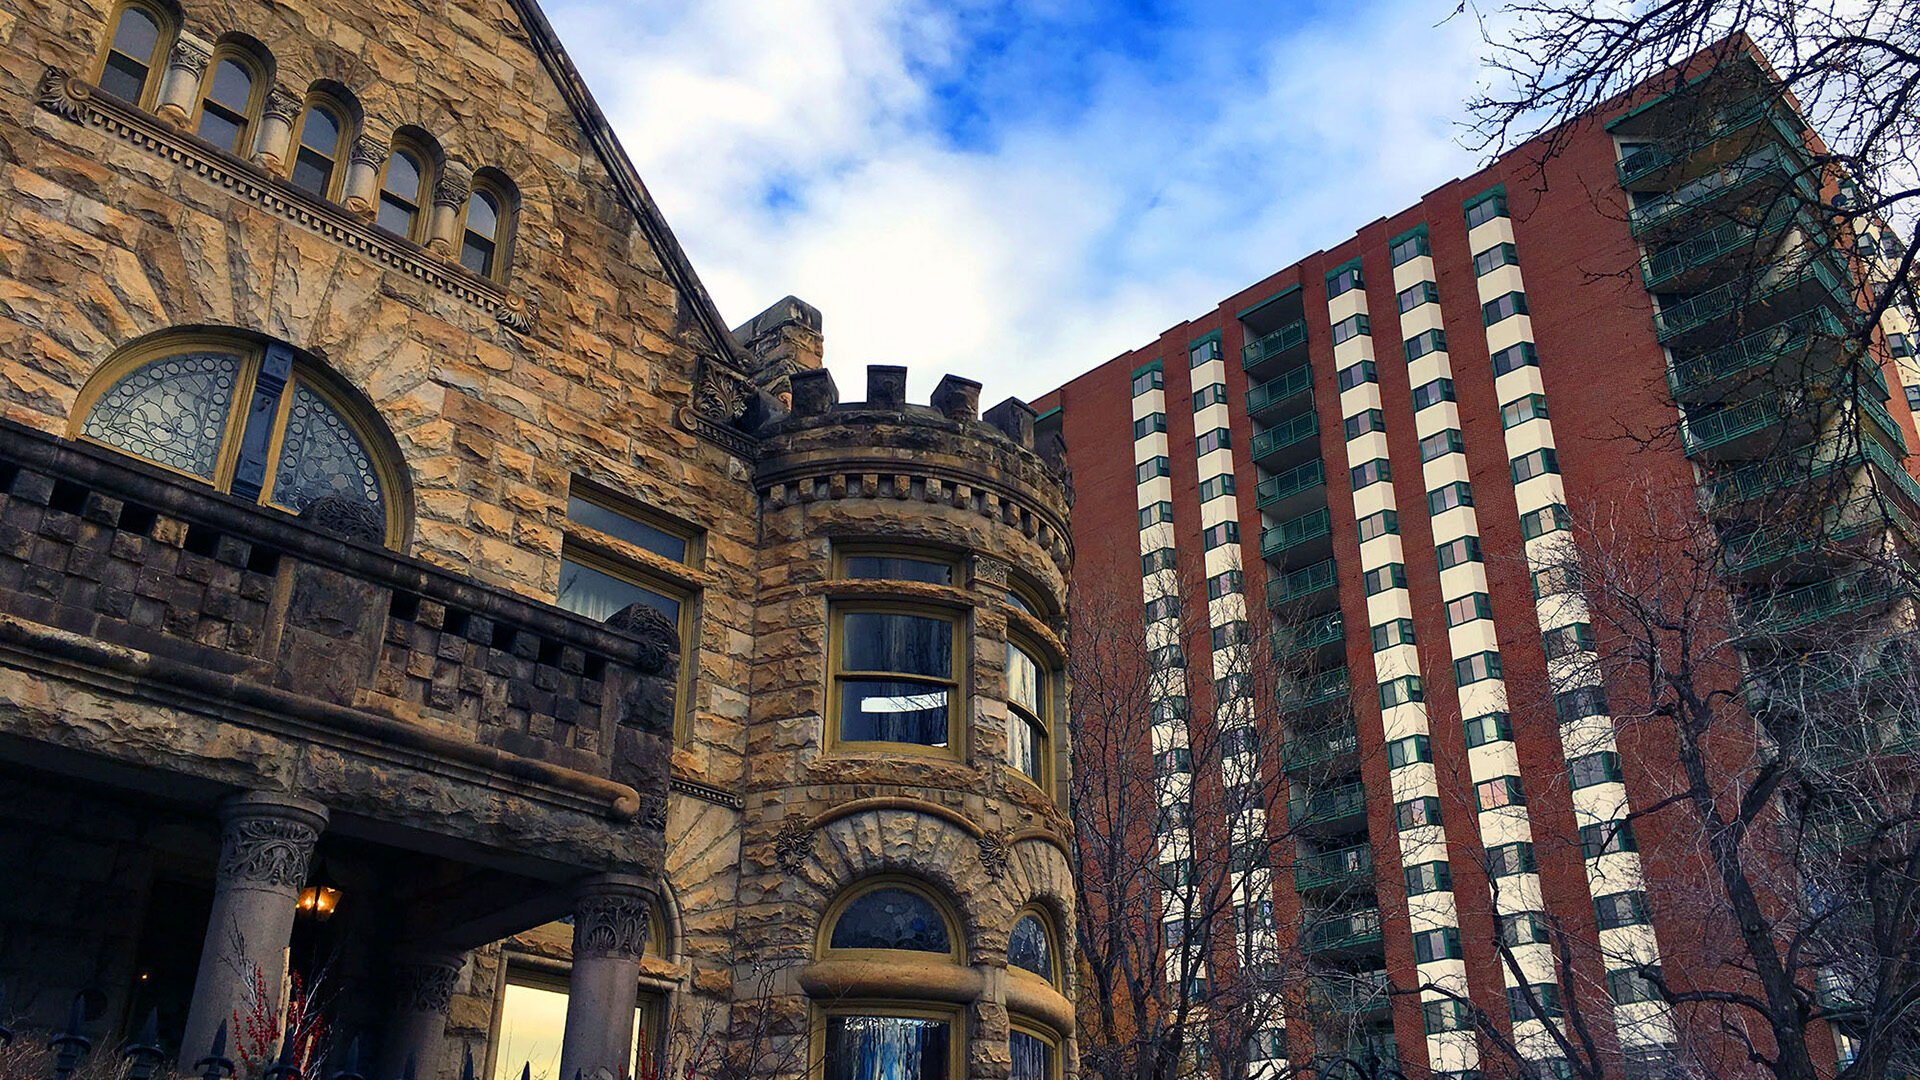 Historic brick building next to high-rise residential building. Sky is blue and partly cloudy. Trees in foreground are bare indicating winter